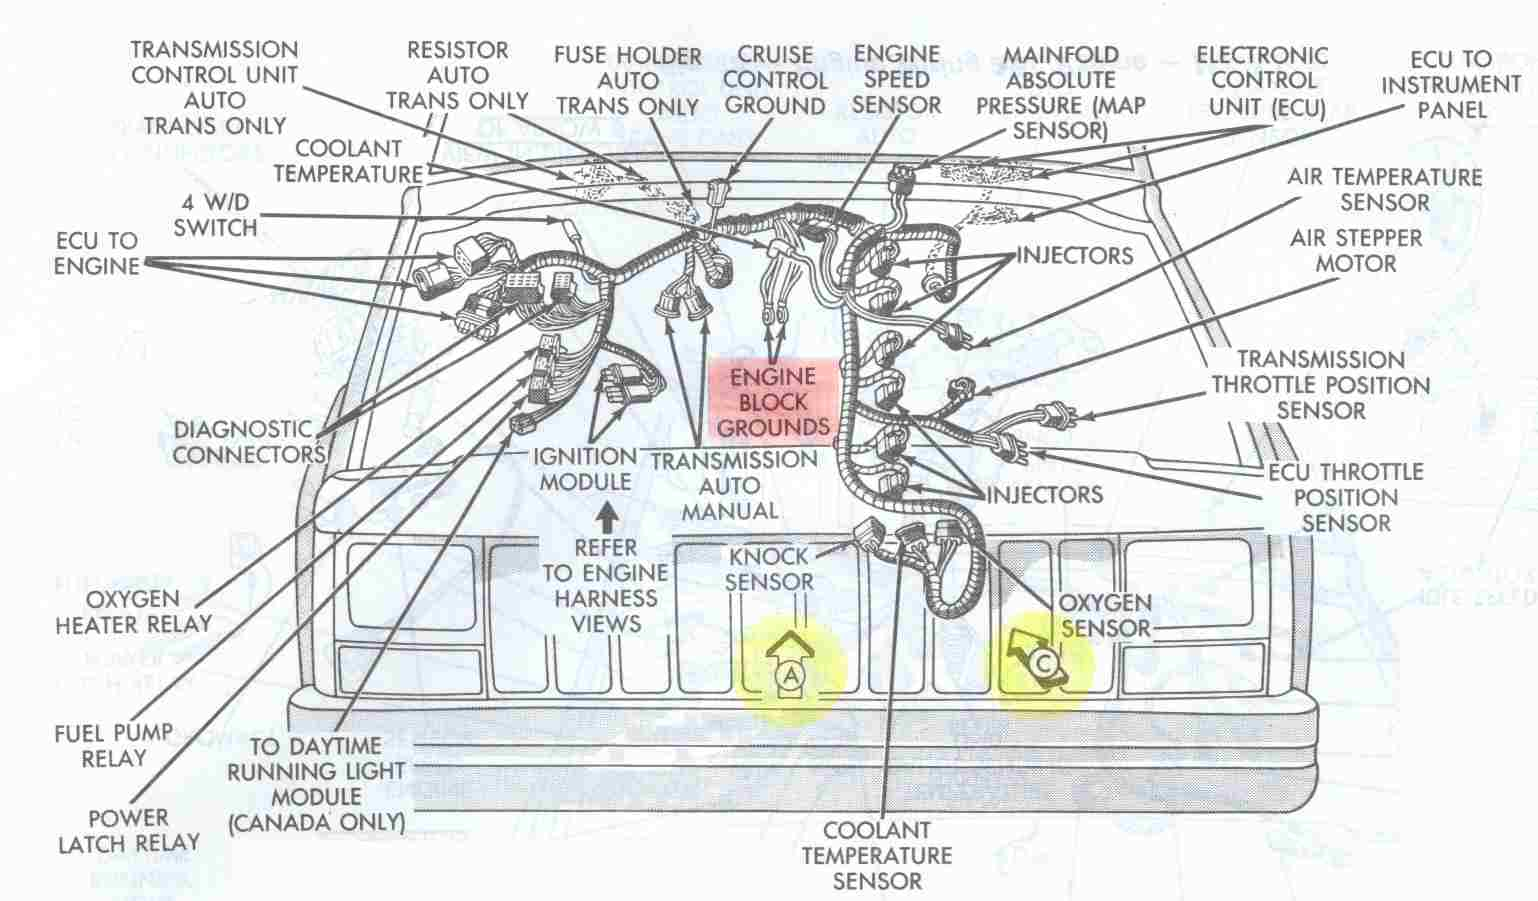 Electrical_Engine_Ground_Points_Overview jeep cherokee electrical diagnosing erratic behavior of engine  at n-0.co